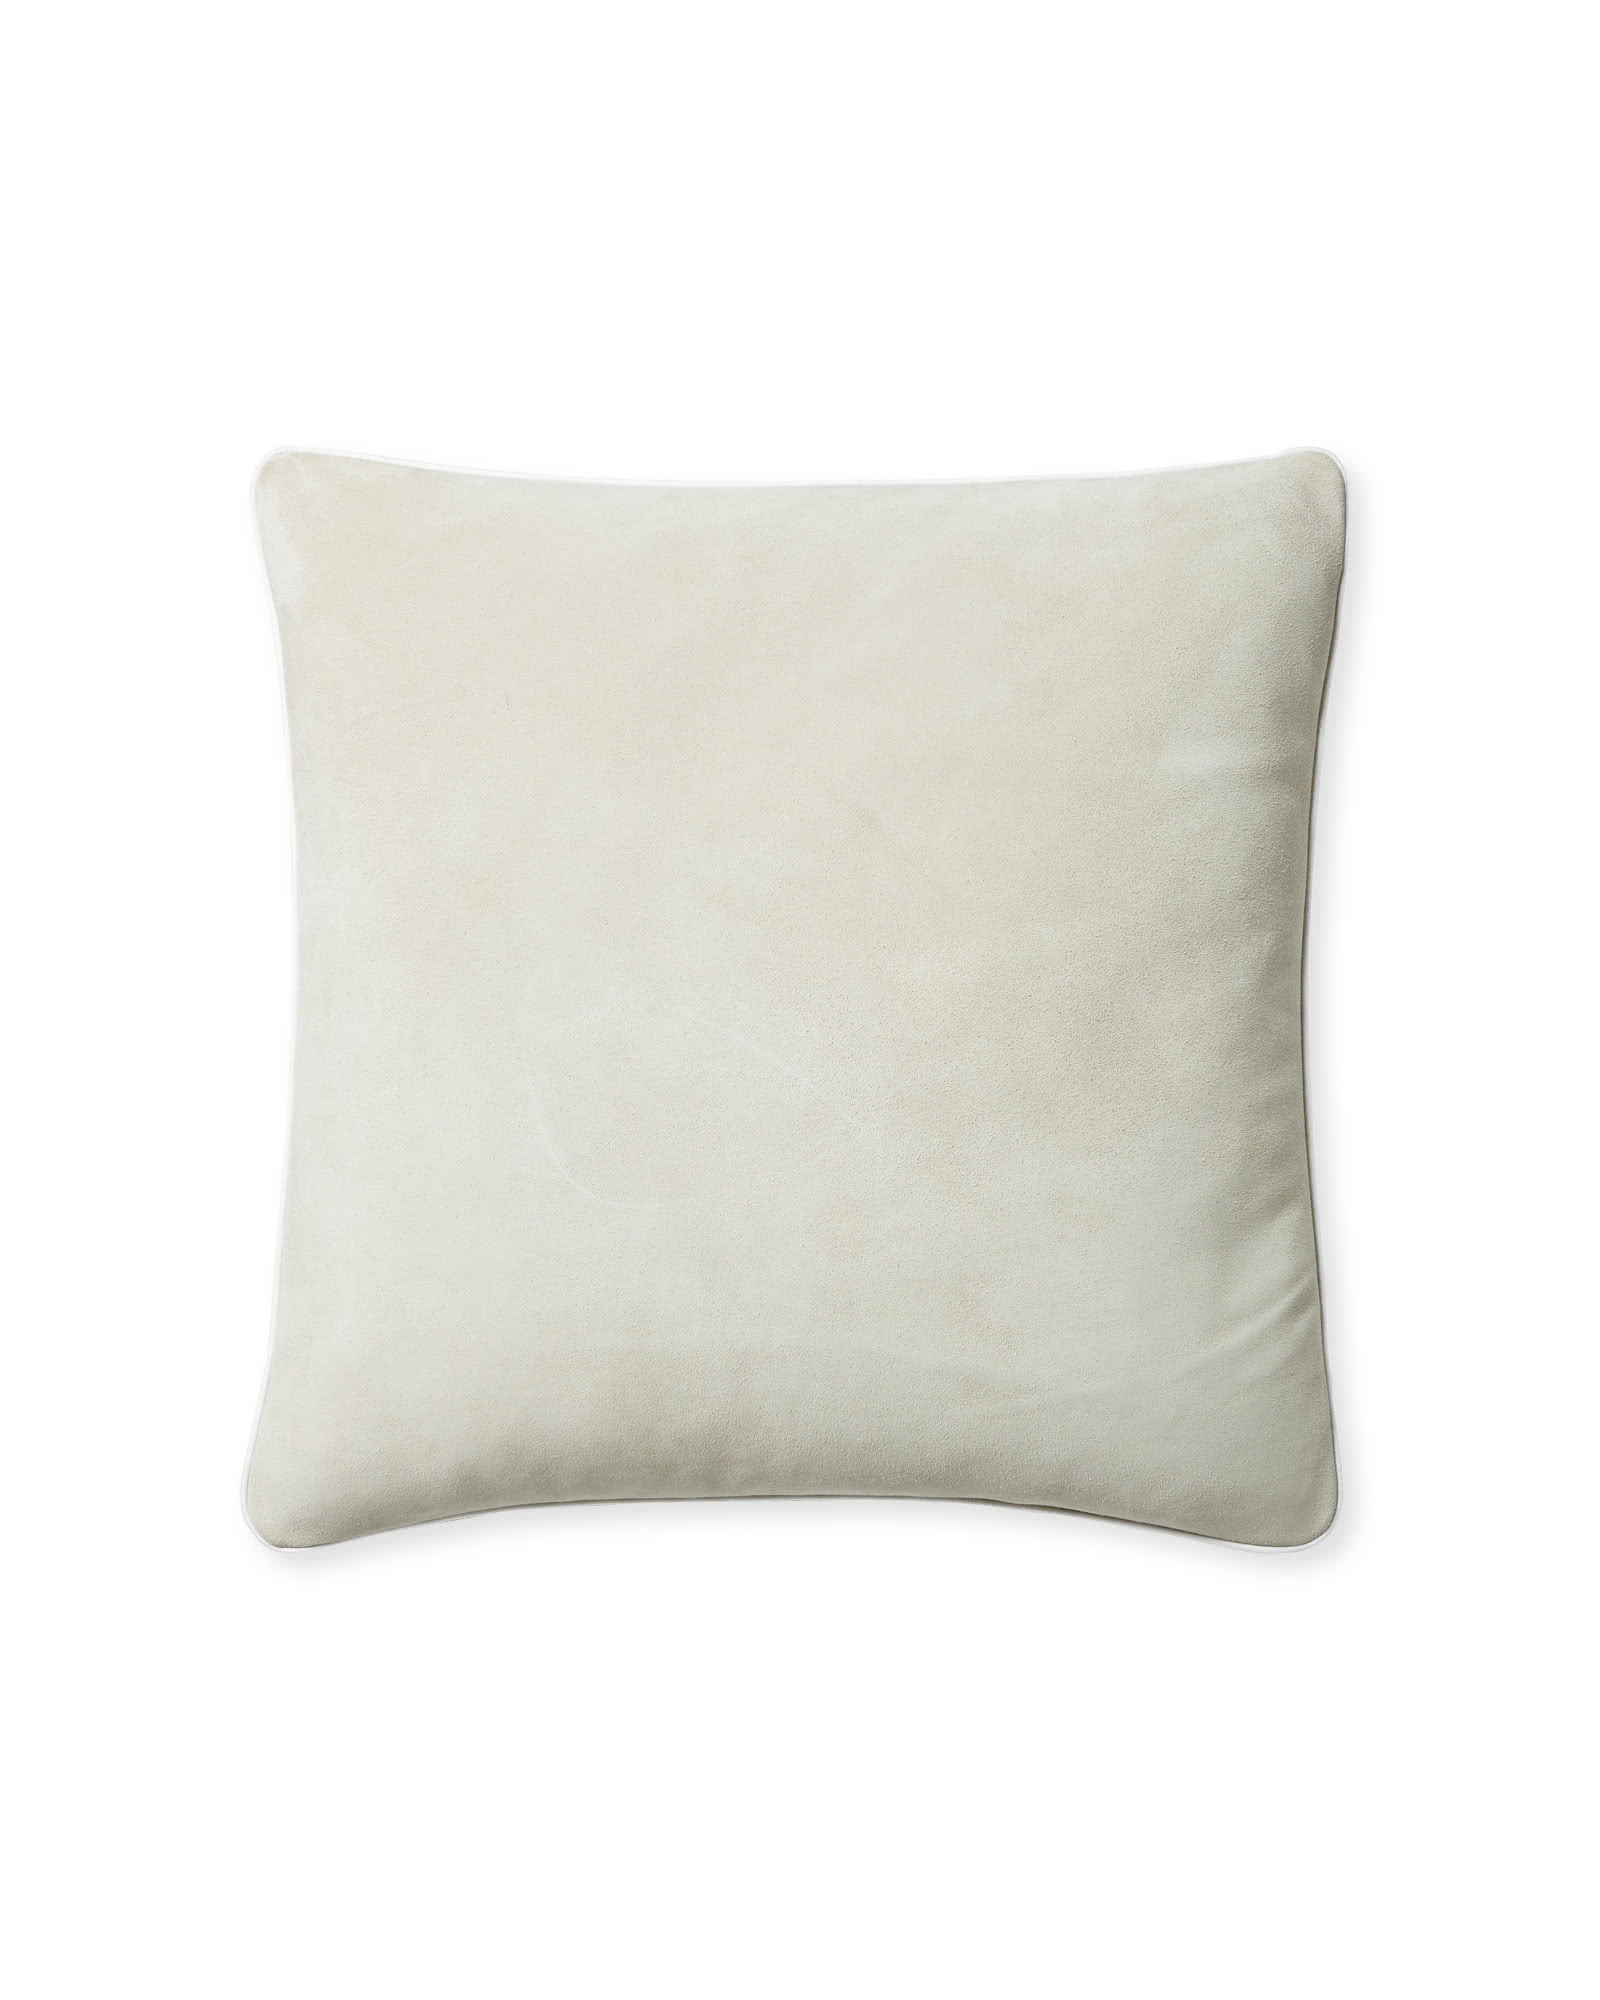 Suede Pillow Cover,